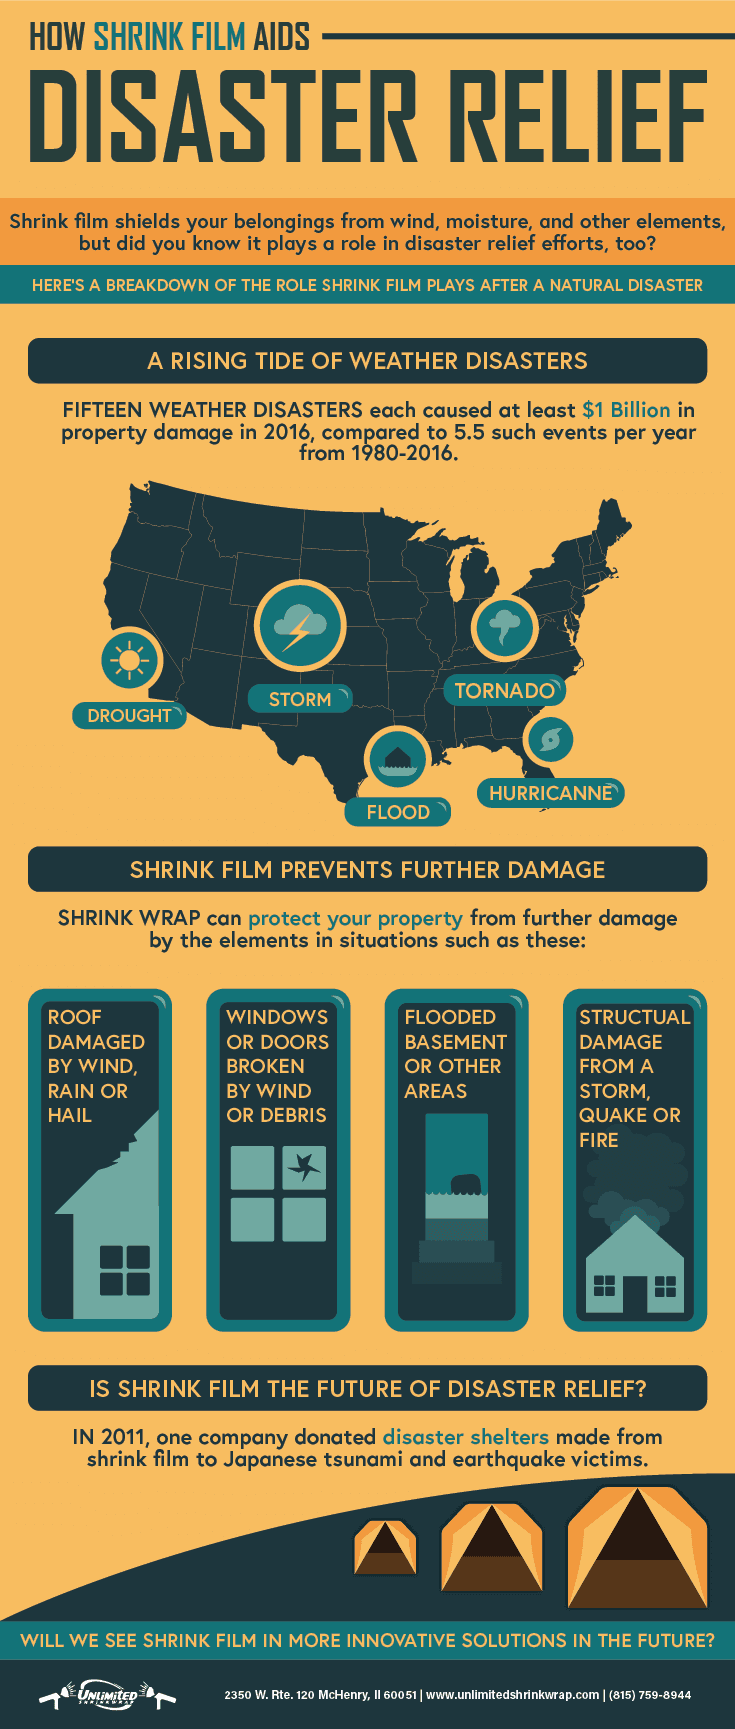 Infographic illustrating the role of shrink film in disaster relief efforts.